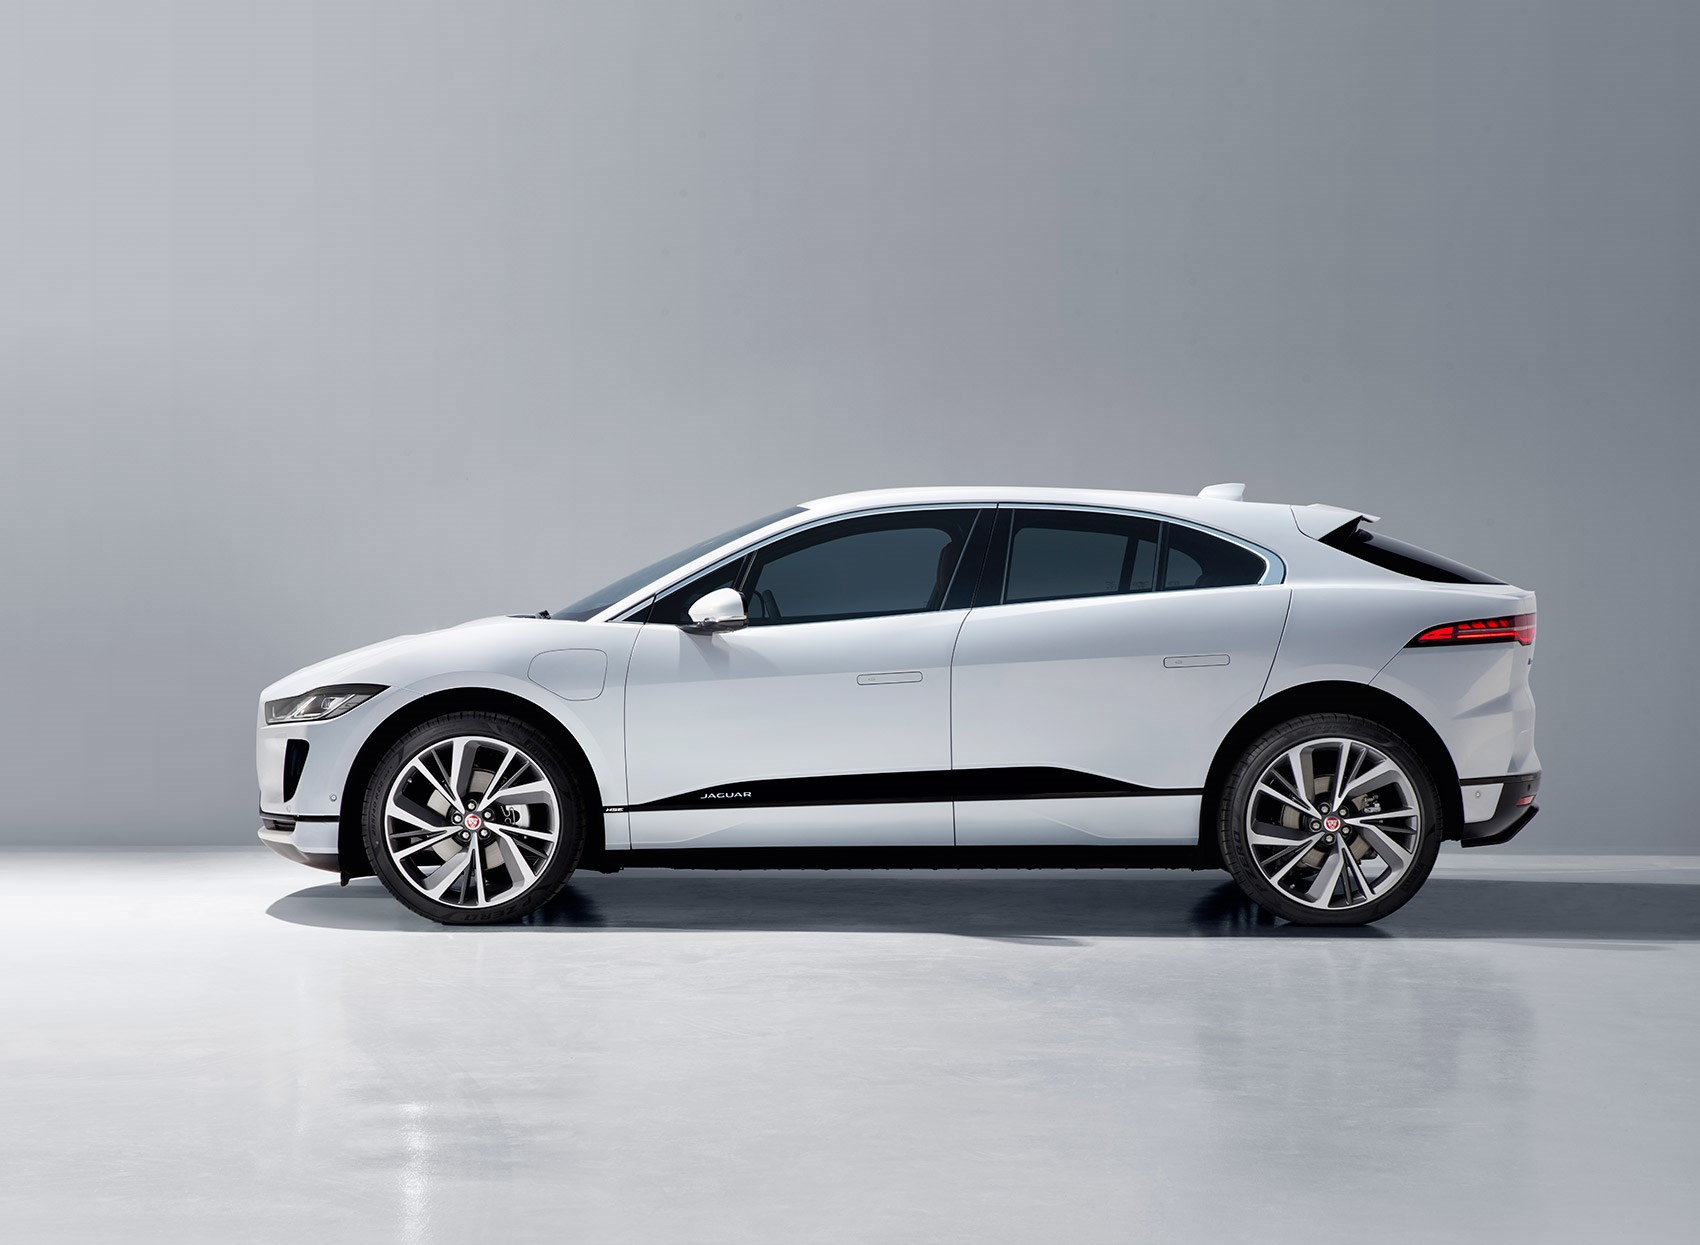 2019 Jaguar I-Pace EV: Design, Specs, Mileage, Price >> Jaguar I Pace Electric Suv News Specs Prices Uk On Sale